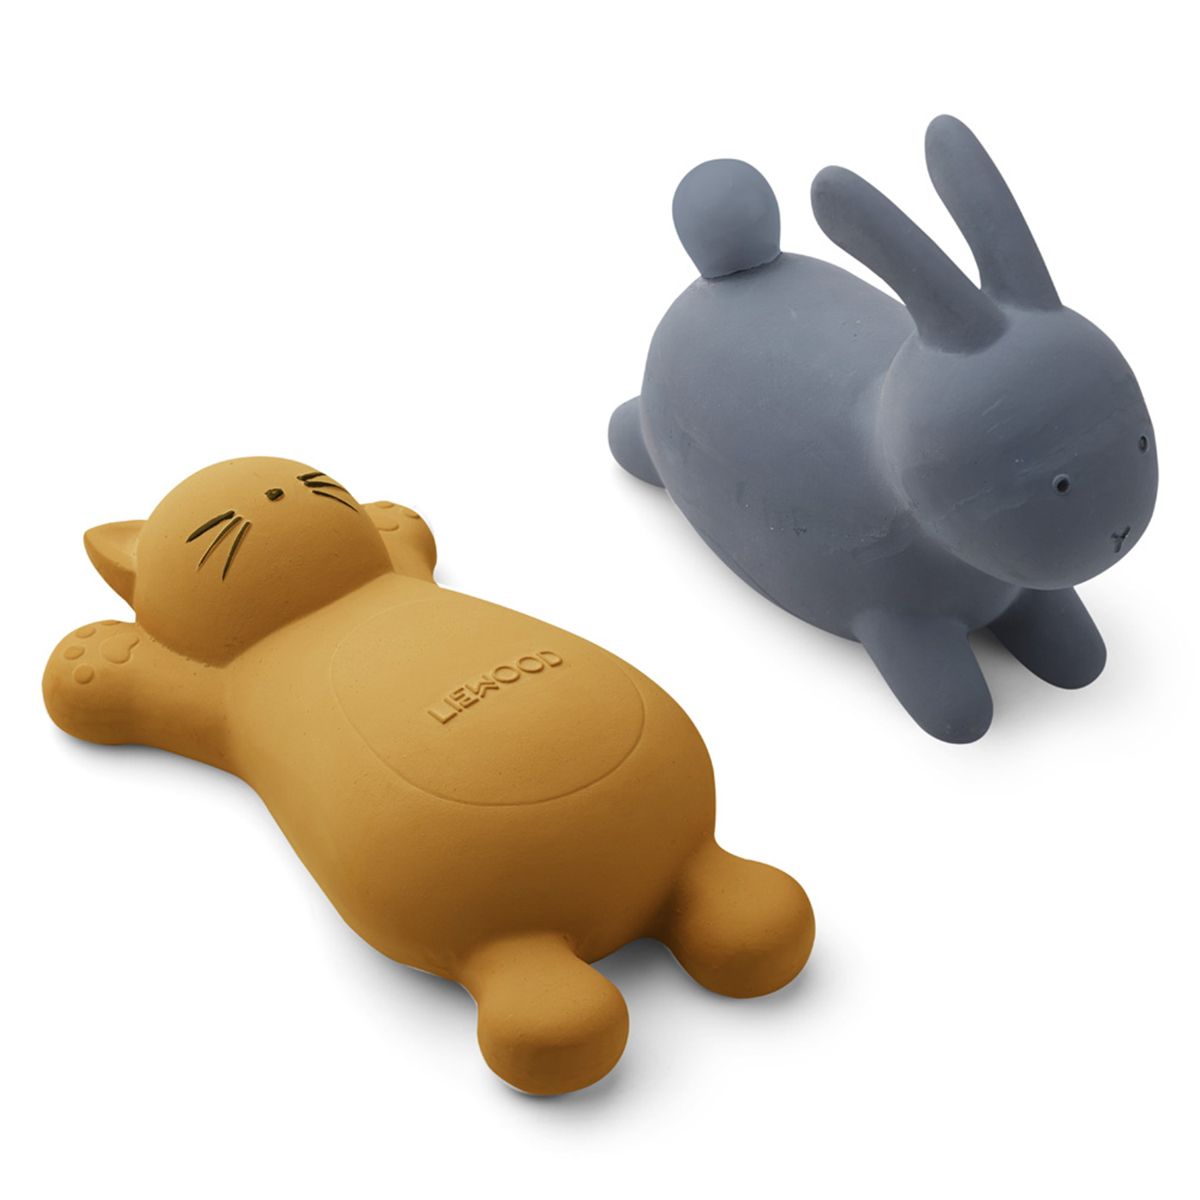 LDLC.com Jouets de Bain Vikky Rabbit Blue Wave & Cat Mustard Jouets de Bain Vikky Rabbit Blue Wave & Cat Mustard